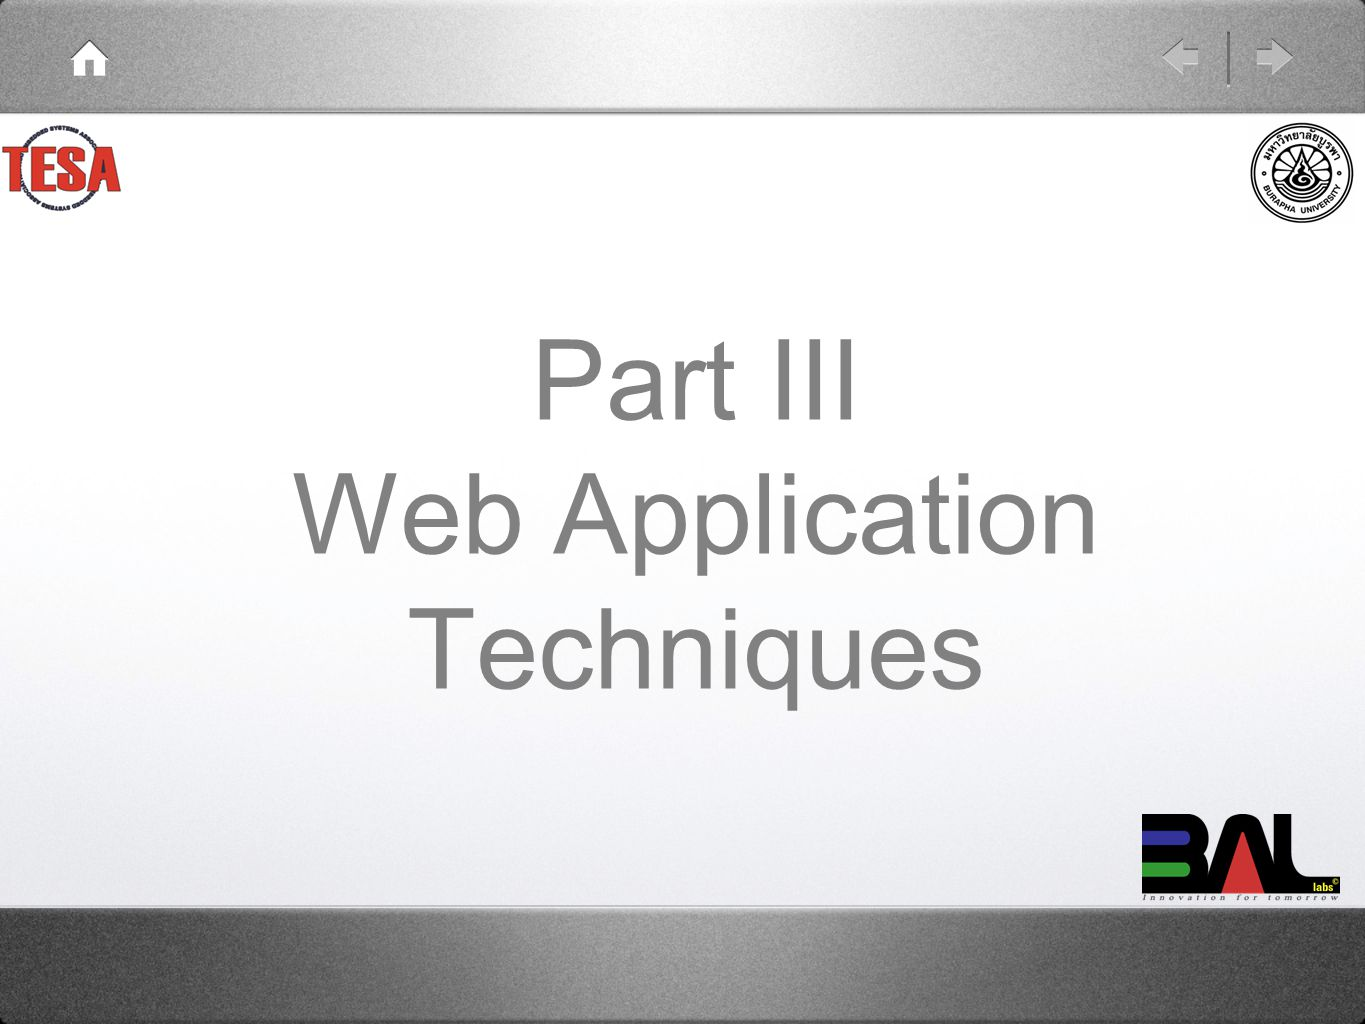 Part III Web Application Techniques